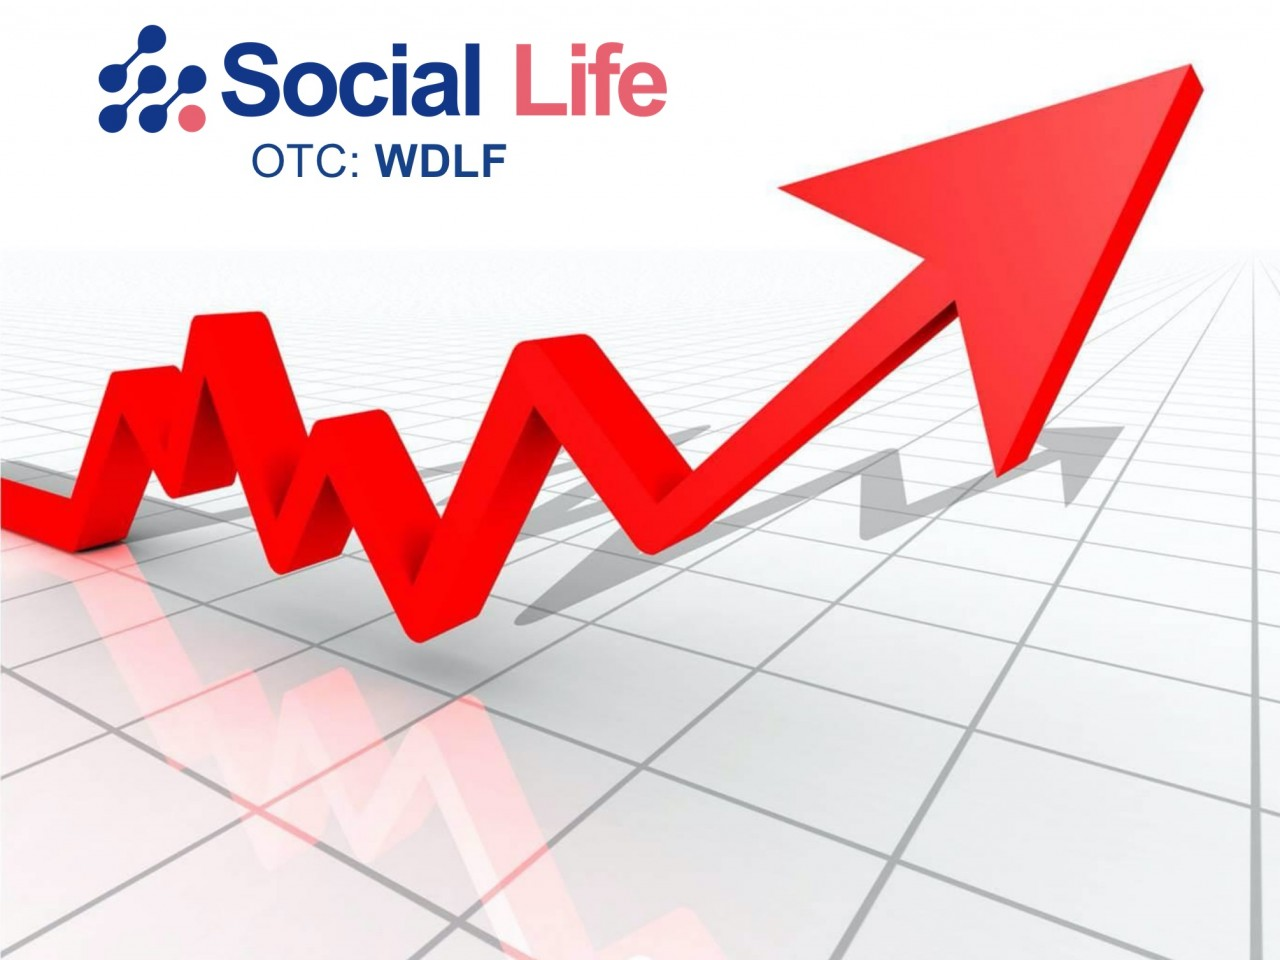 Social Life Network Reschedules Shareholder Update for April 7th, in response to COVID-19